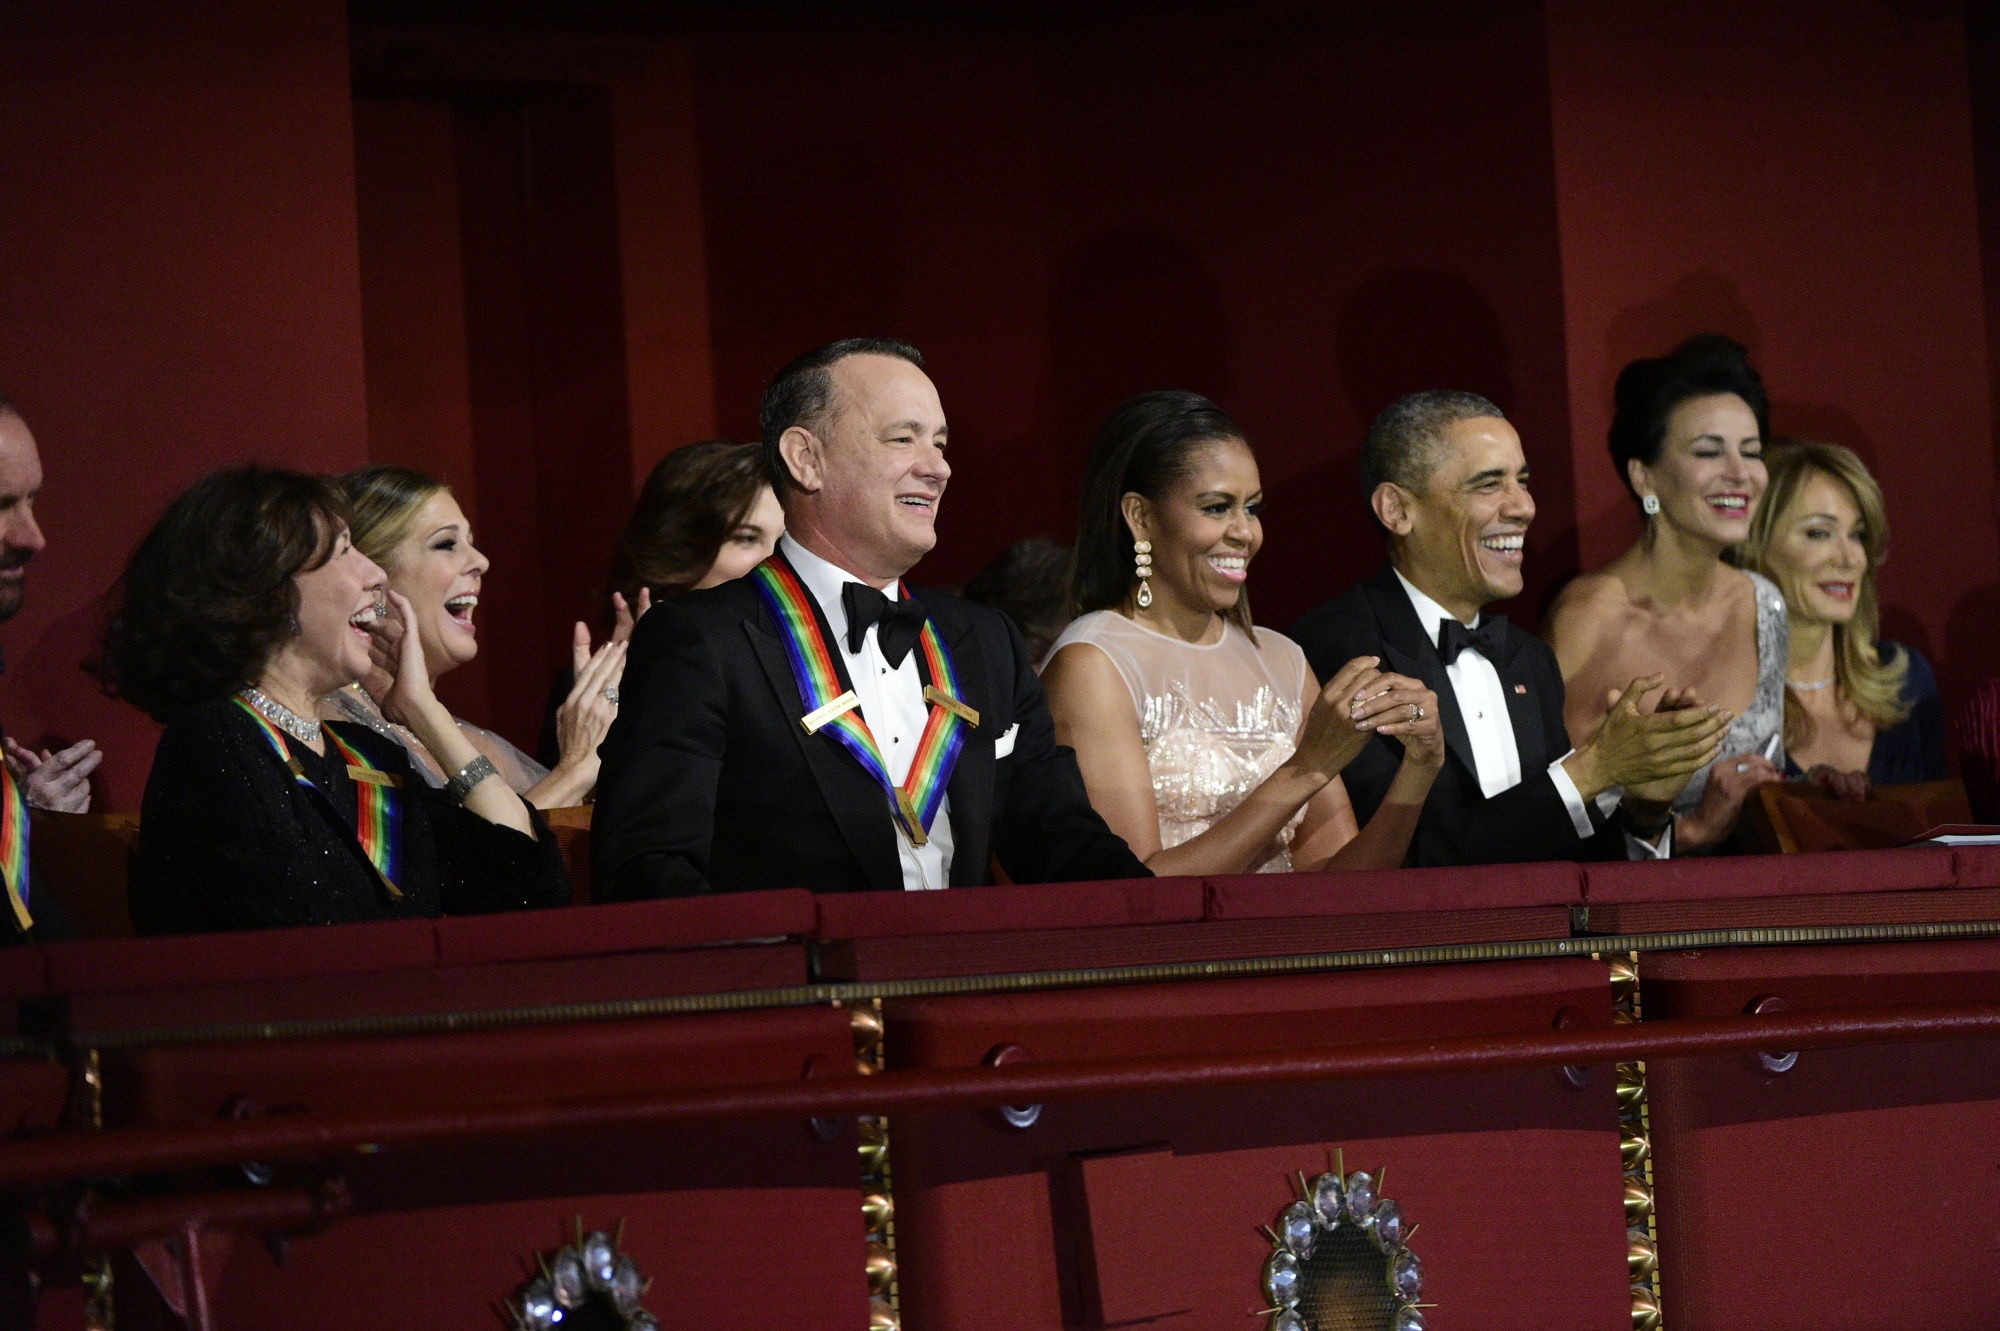 Lily Tomlin, Rita Wilson, Tom Hanks, First Lady Michelle Obama, and President Barack Obama